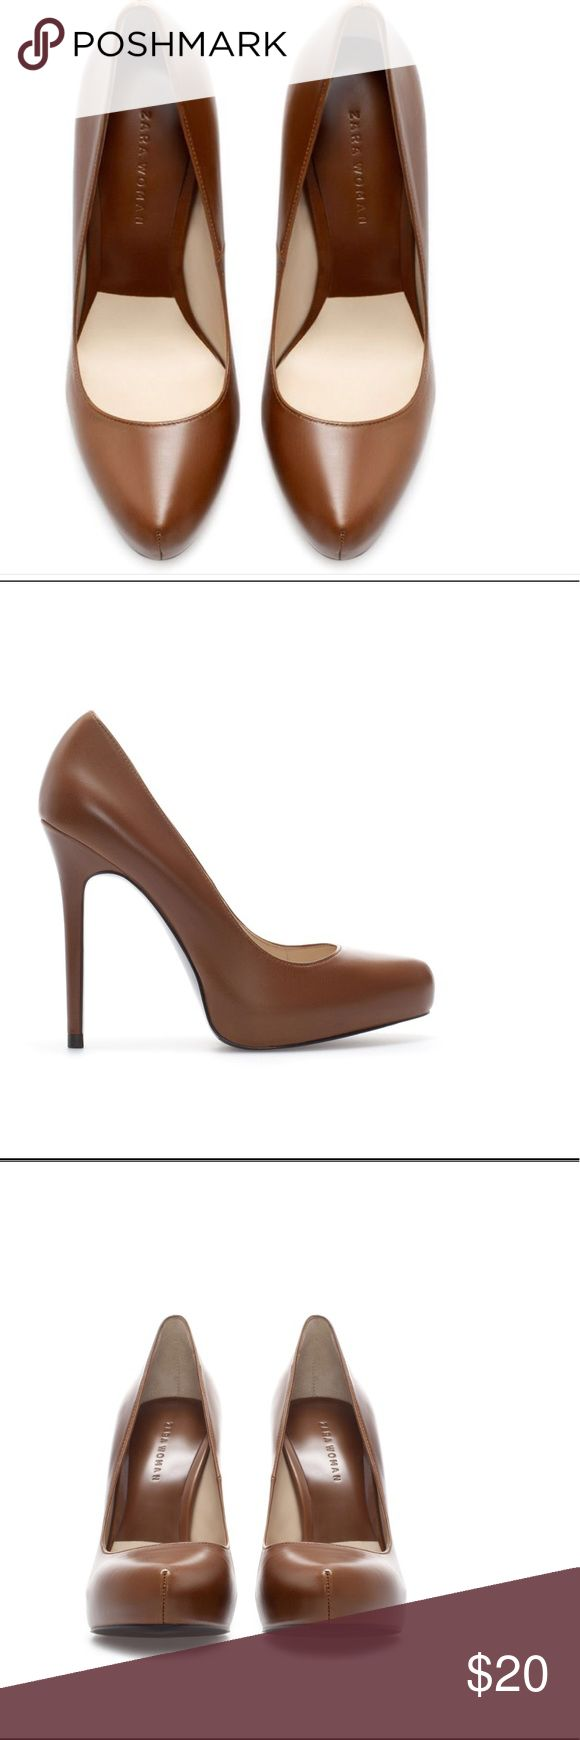 Zara Brown Court Shoe Pre-loved Zara Leather platform court shoe. Zara Shoes Heels